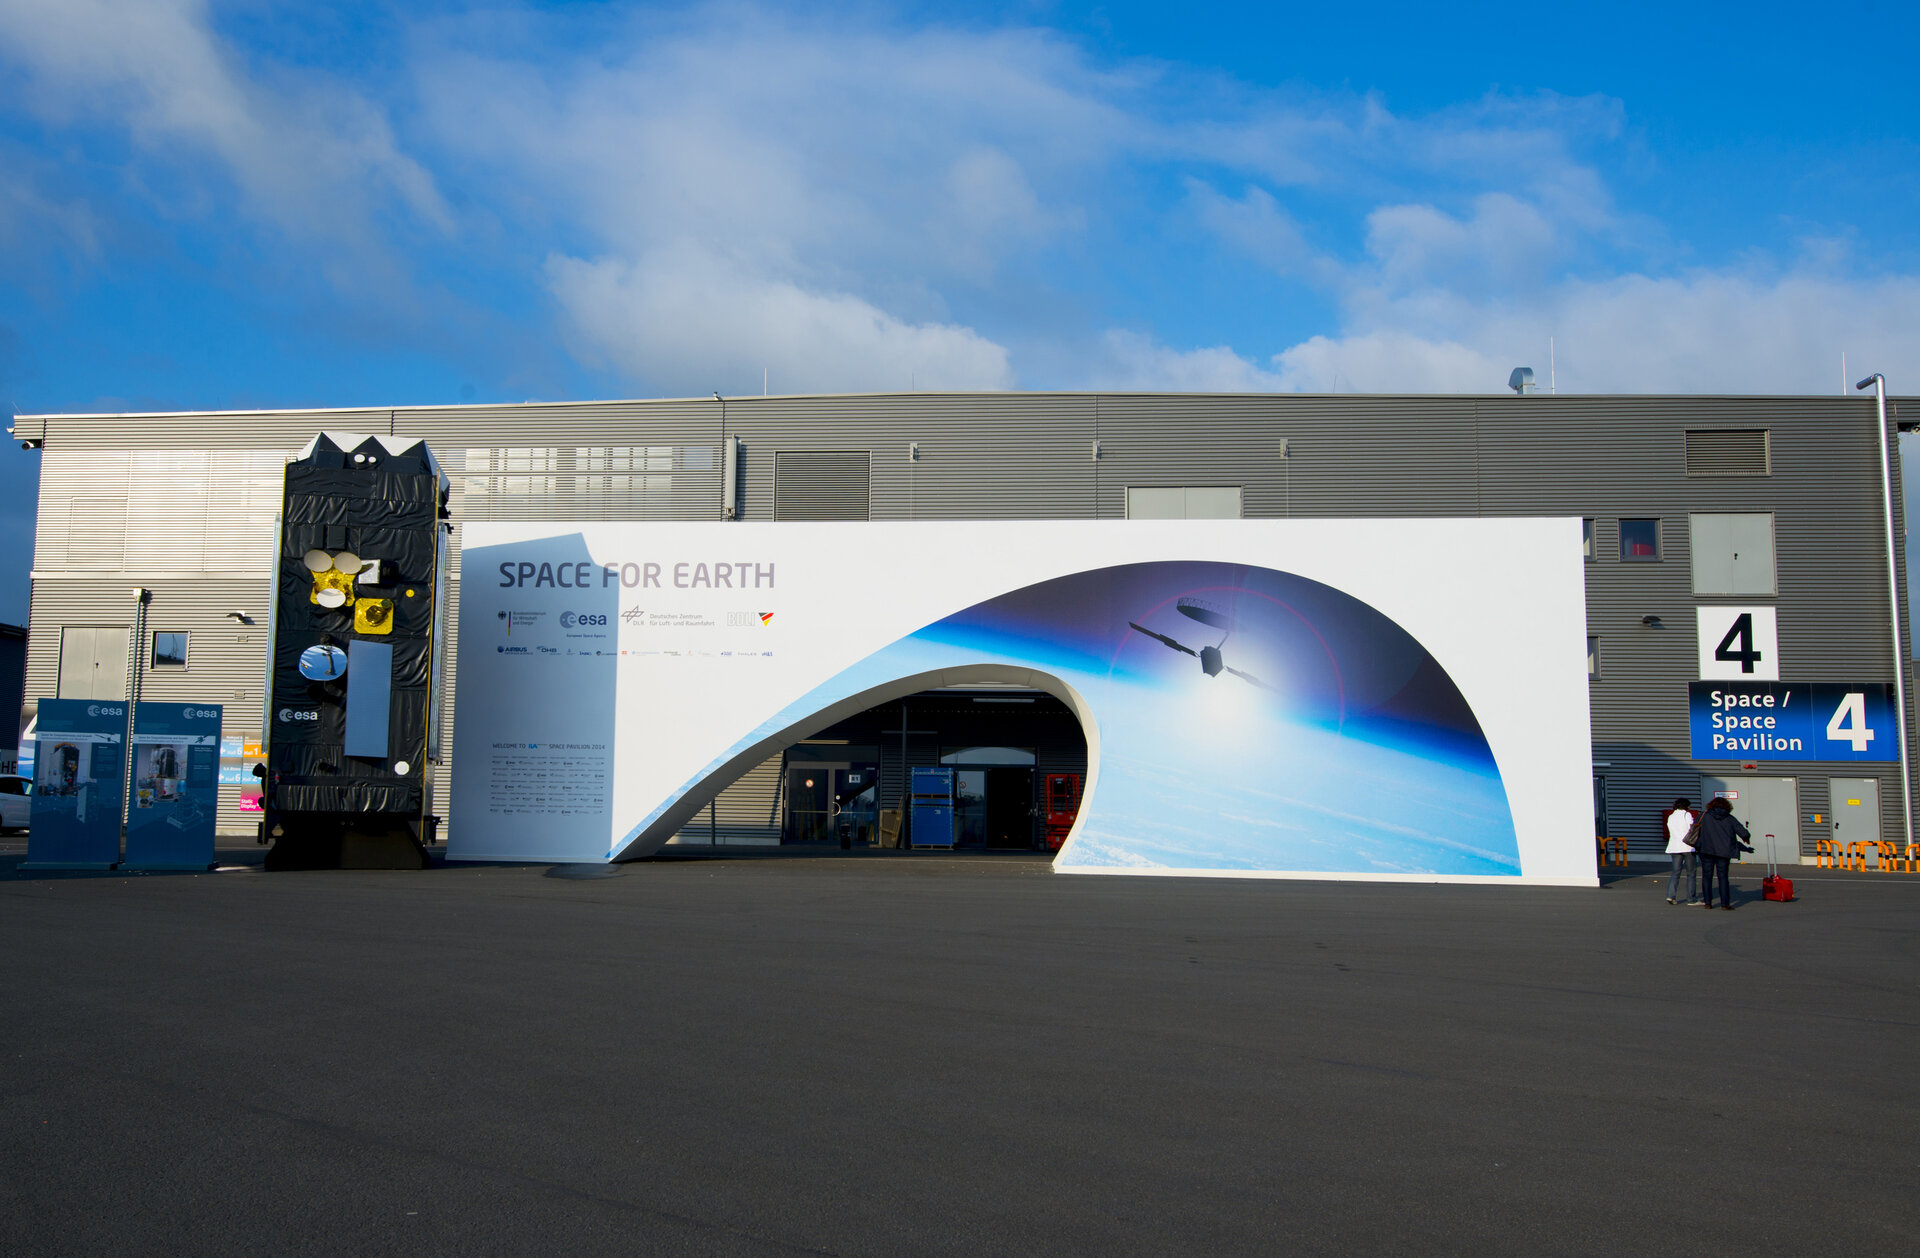 Entrance of the 'Space for Earth' space pavilion at ILA 2014